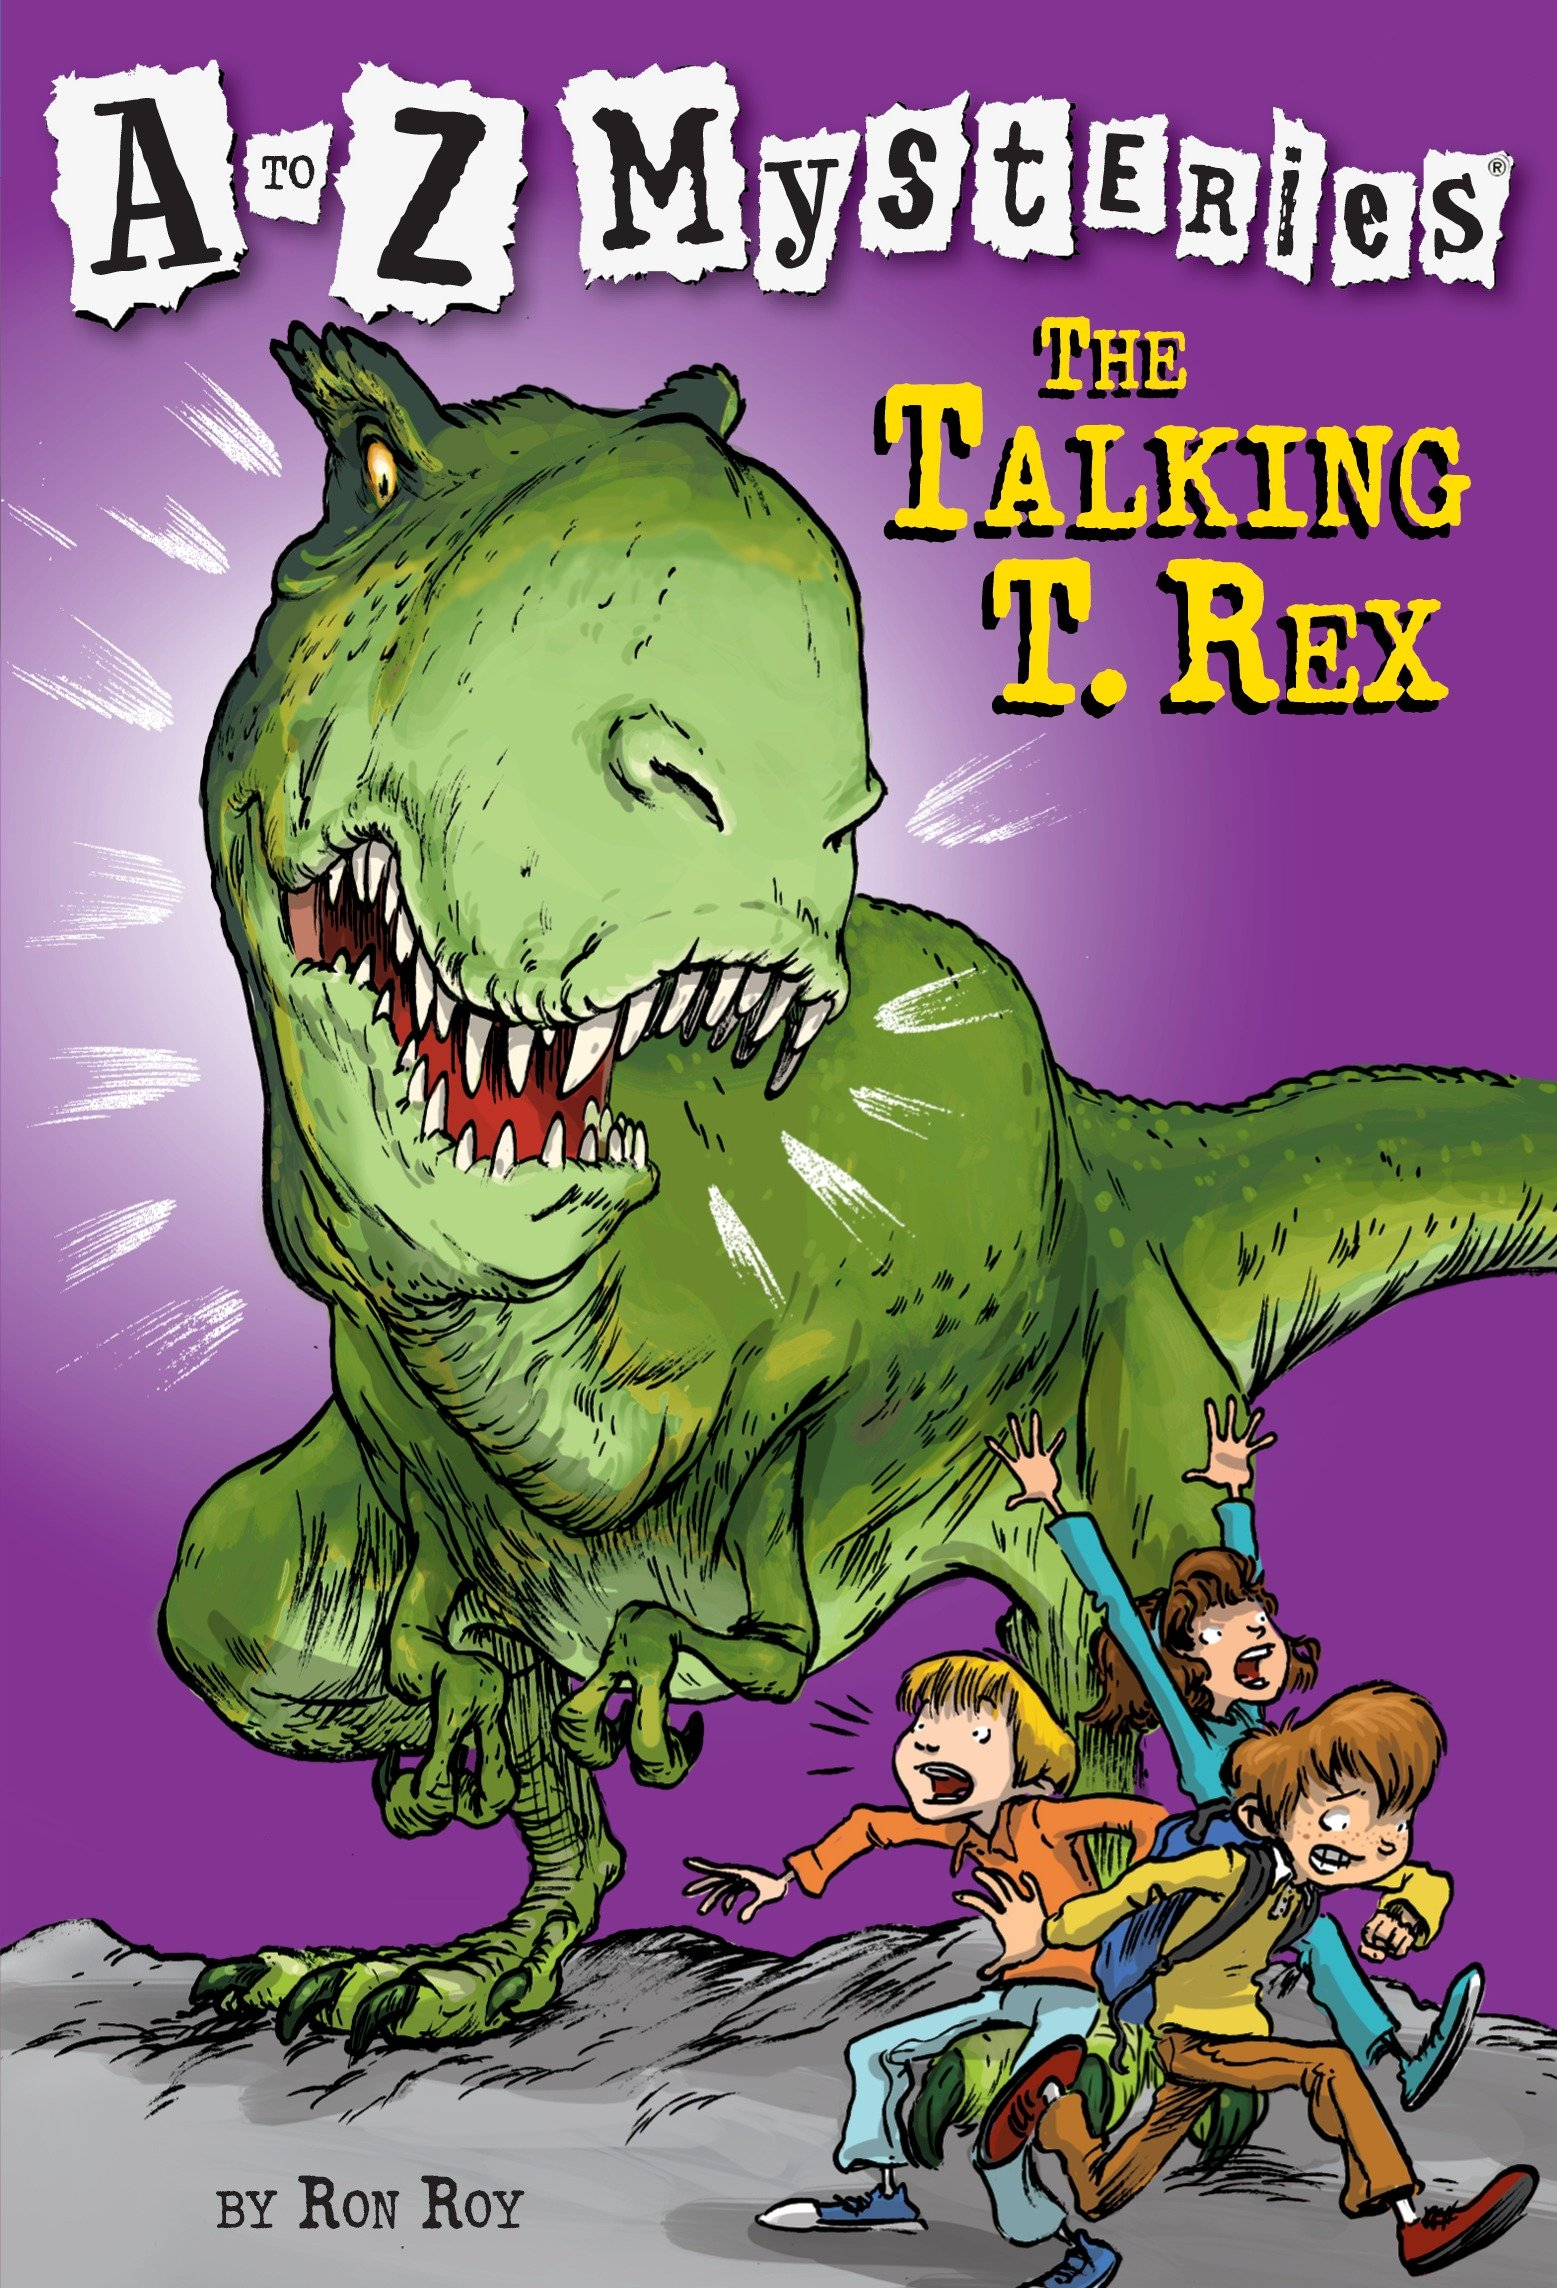 The Talking T. Rex cover image